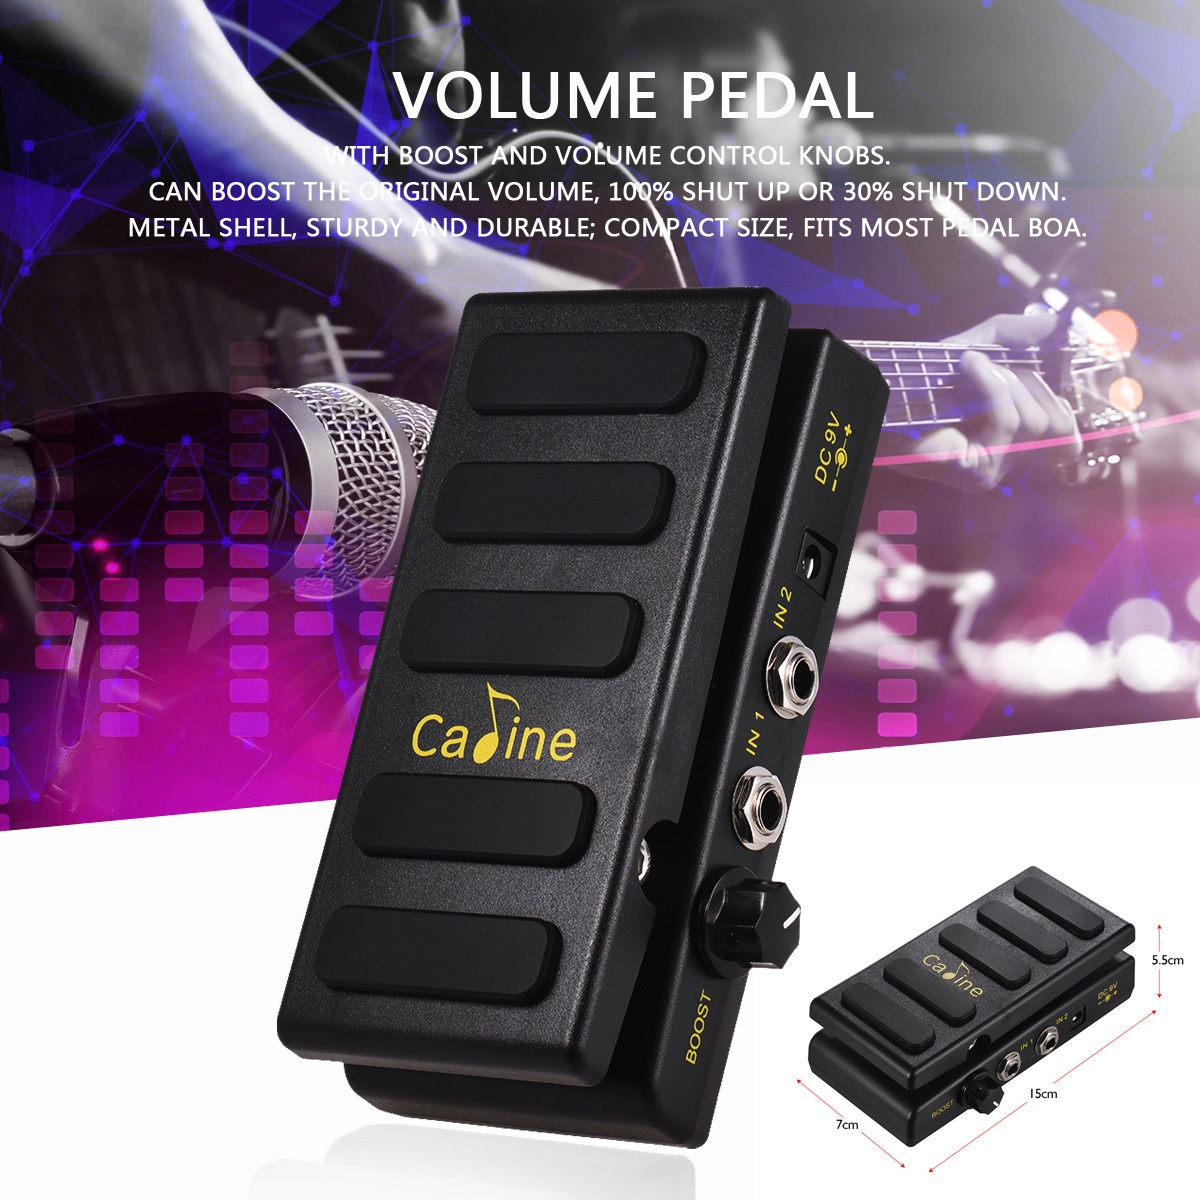 Caline CP-31P two-channel volume pedal